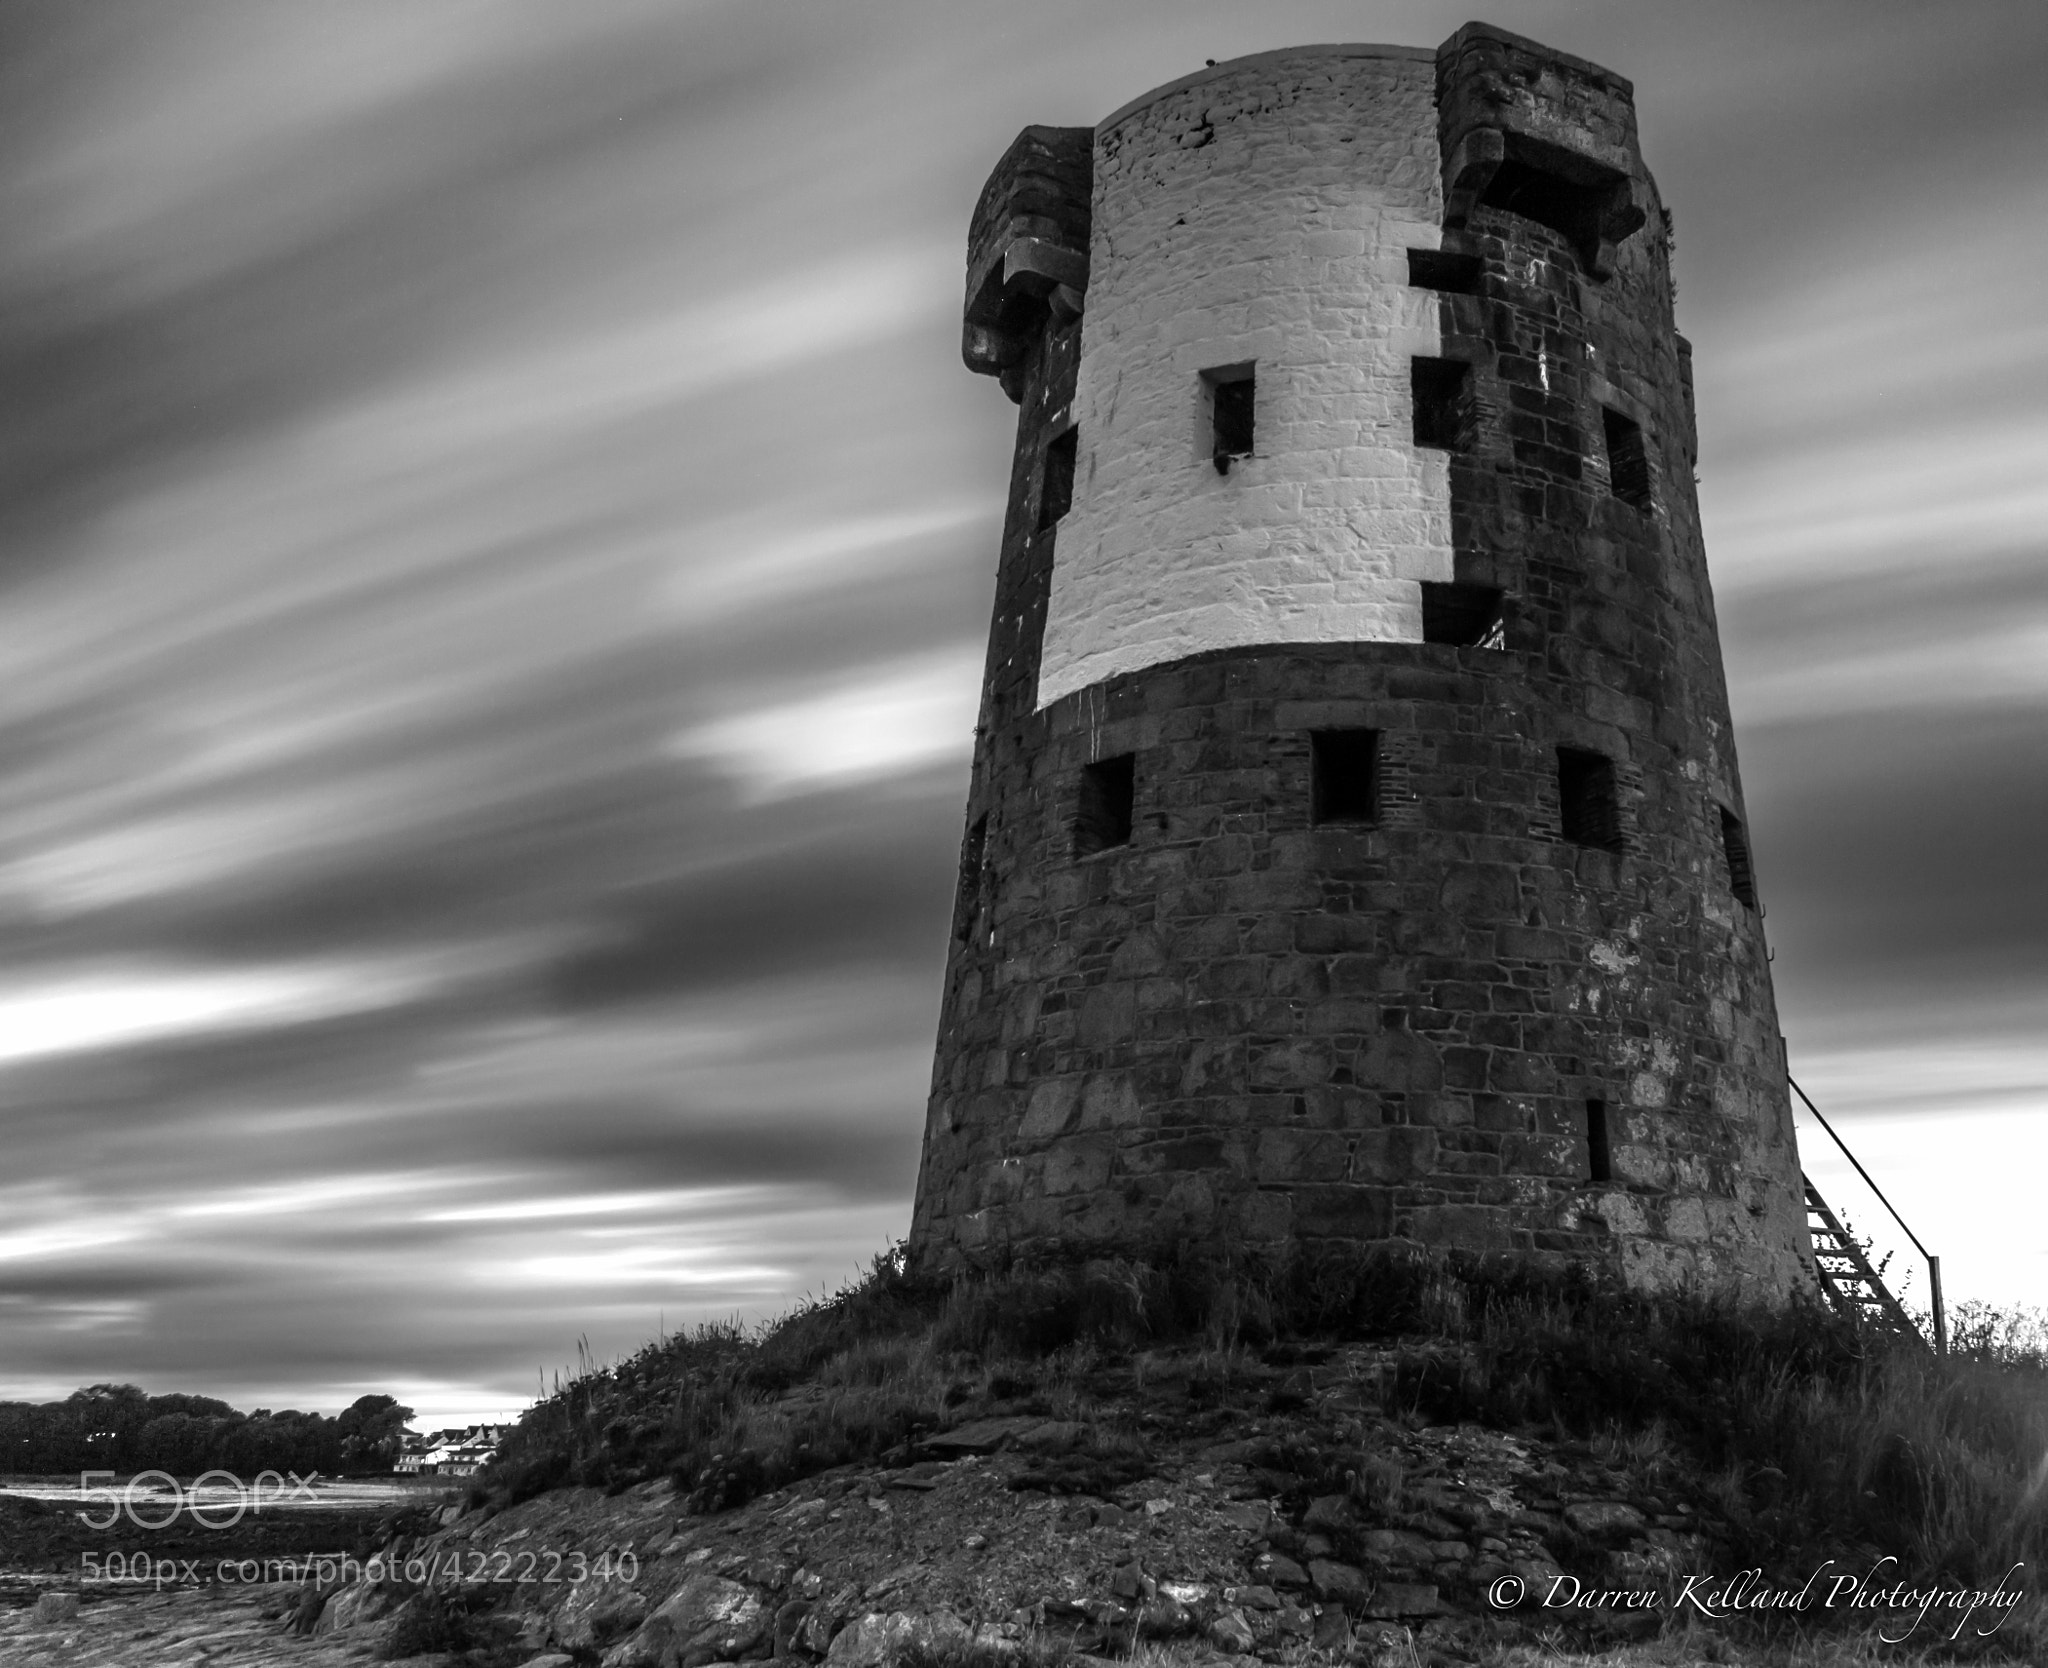 Photograph Tower by Darren Kelland on 500px